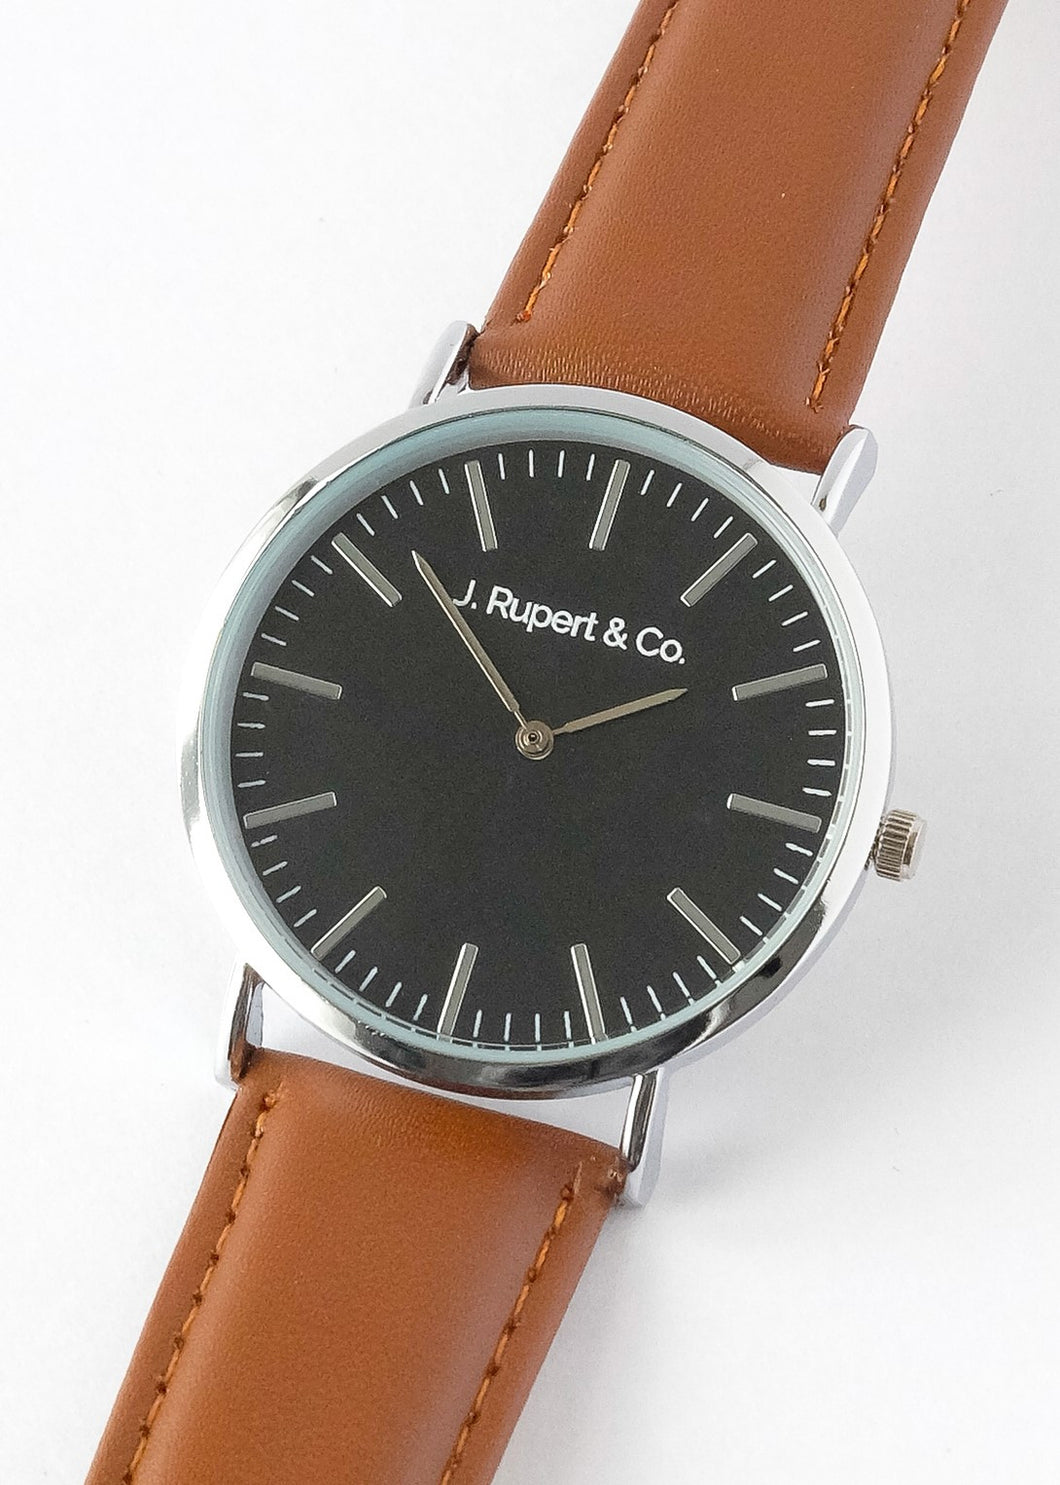 Zagreb - Men's Watch With Brown Leather Strap - Close Up